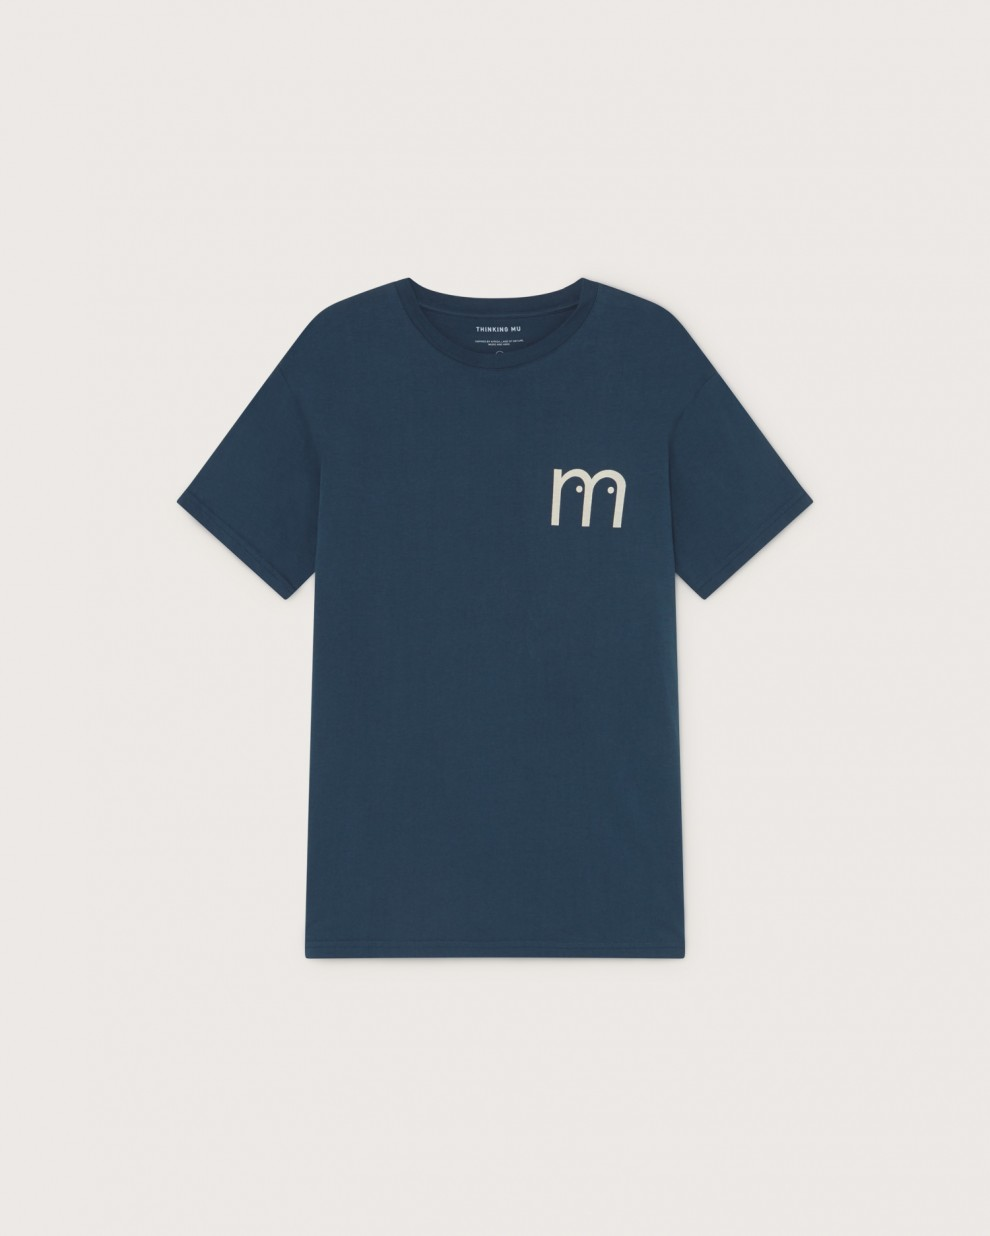 M Eyes blue t-shirt